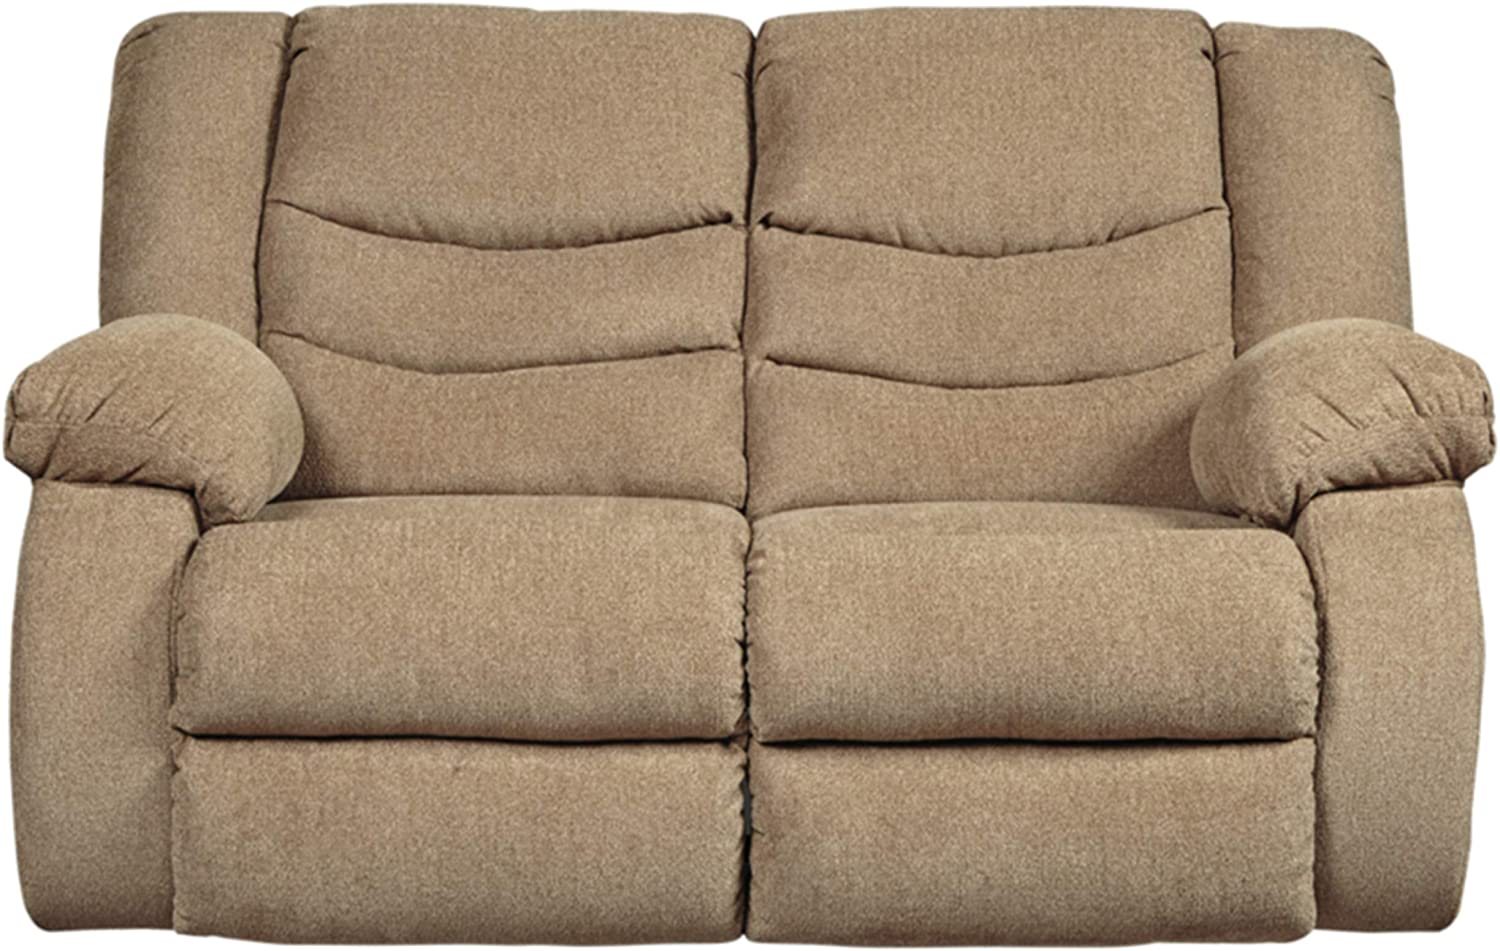 Signature Brand Cheap Sale Venue Design by Ashley - Award-winning store Casual Tulen Reclining Upholstered